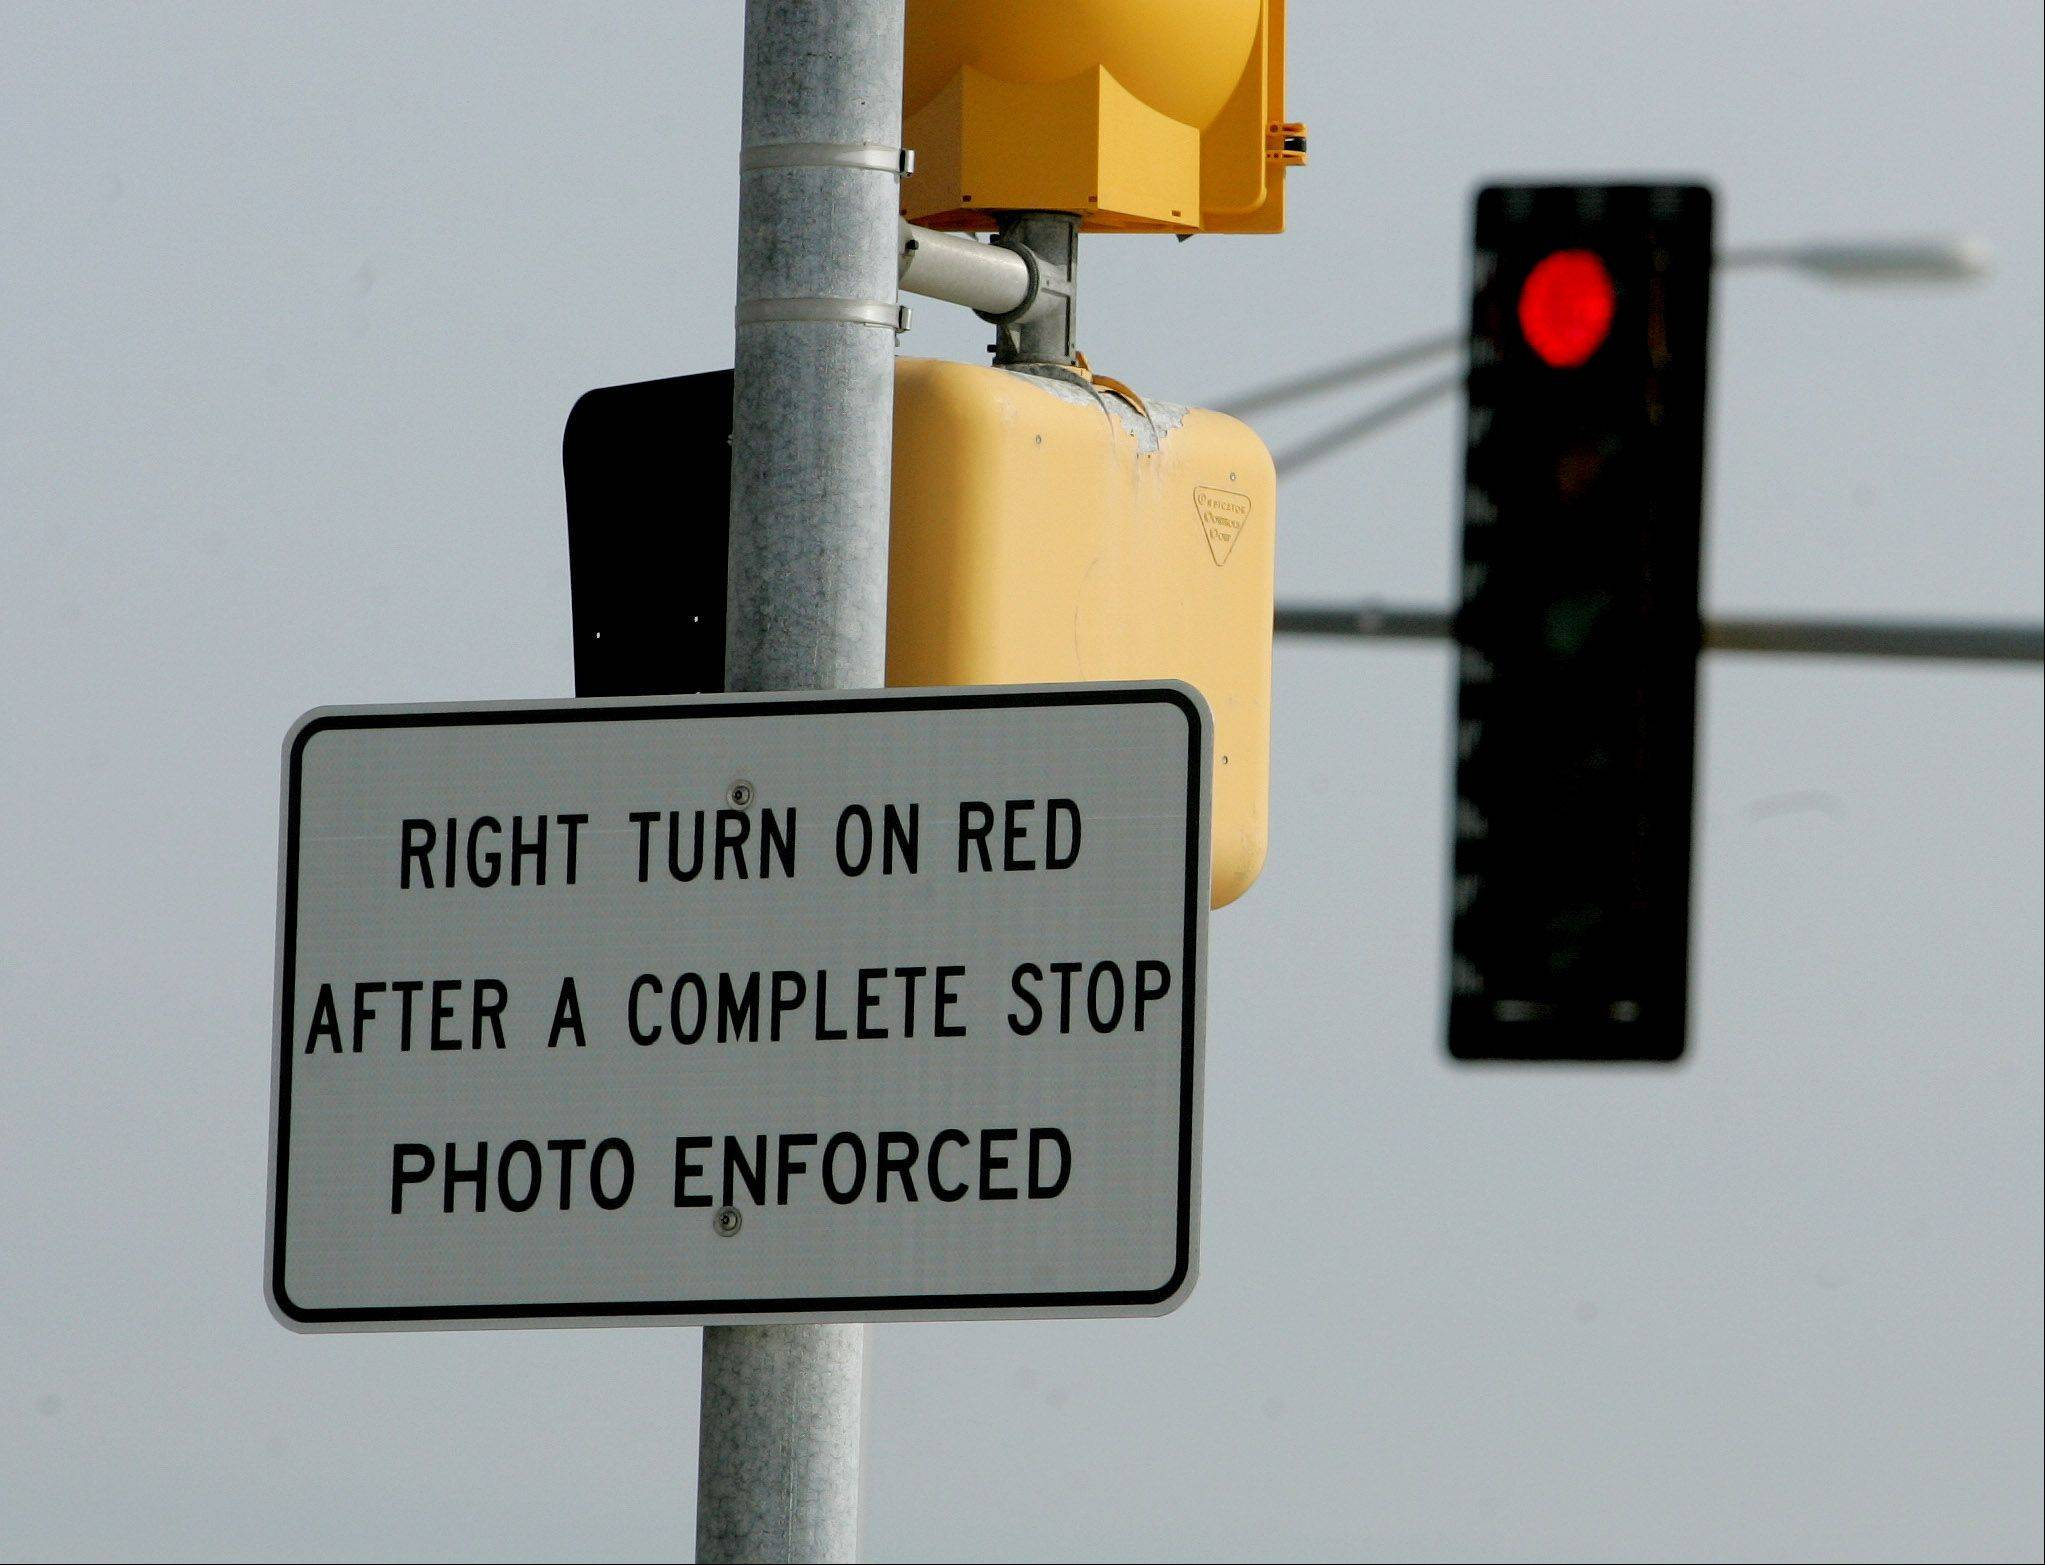 Think red-light cameras are bad? Speed cameras could be next. A measure introduced in the state legislature last week would allow suburban communities to install speed cameras near schools and parks.